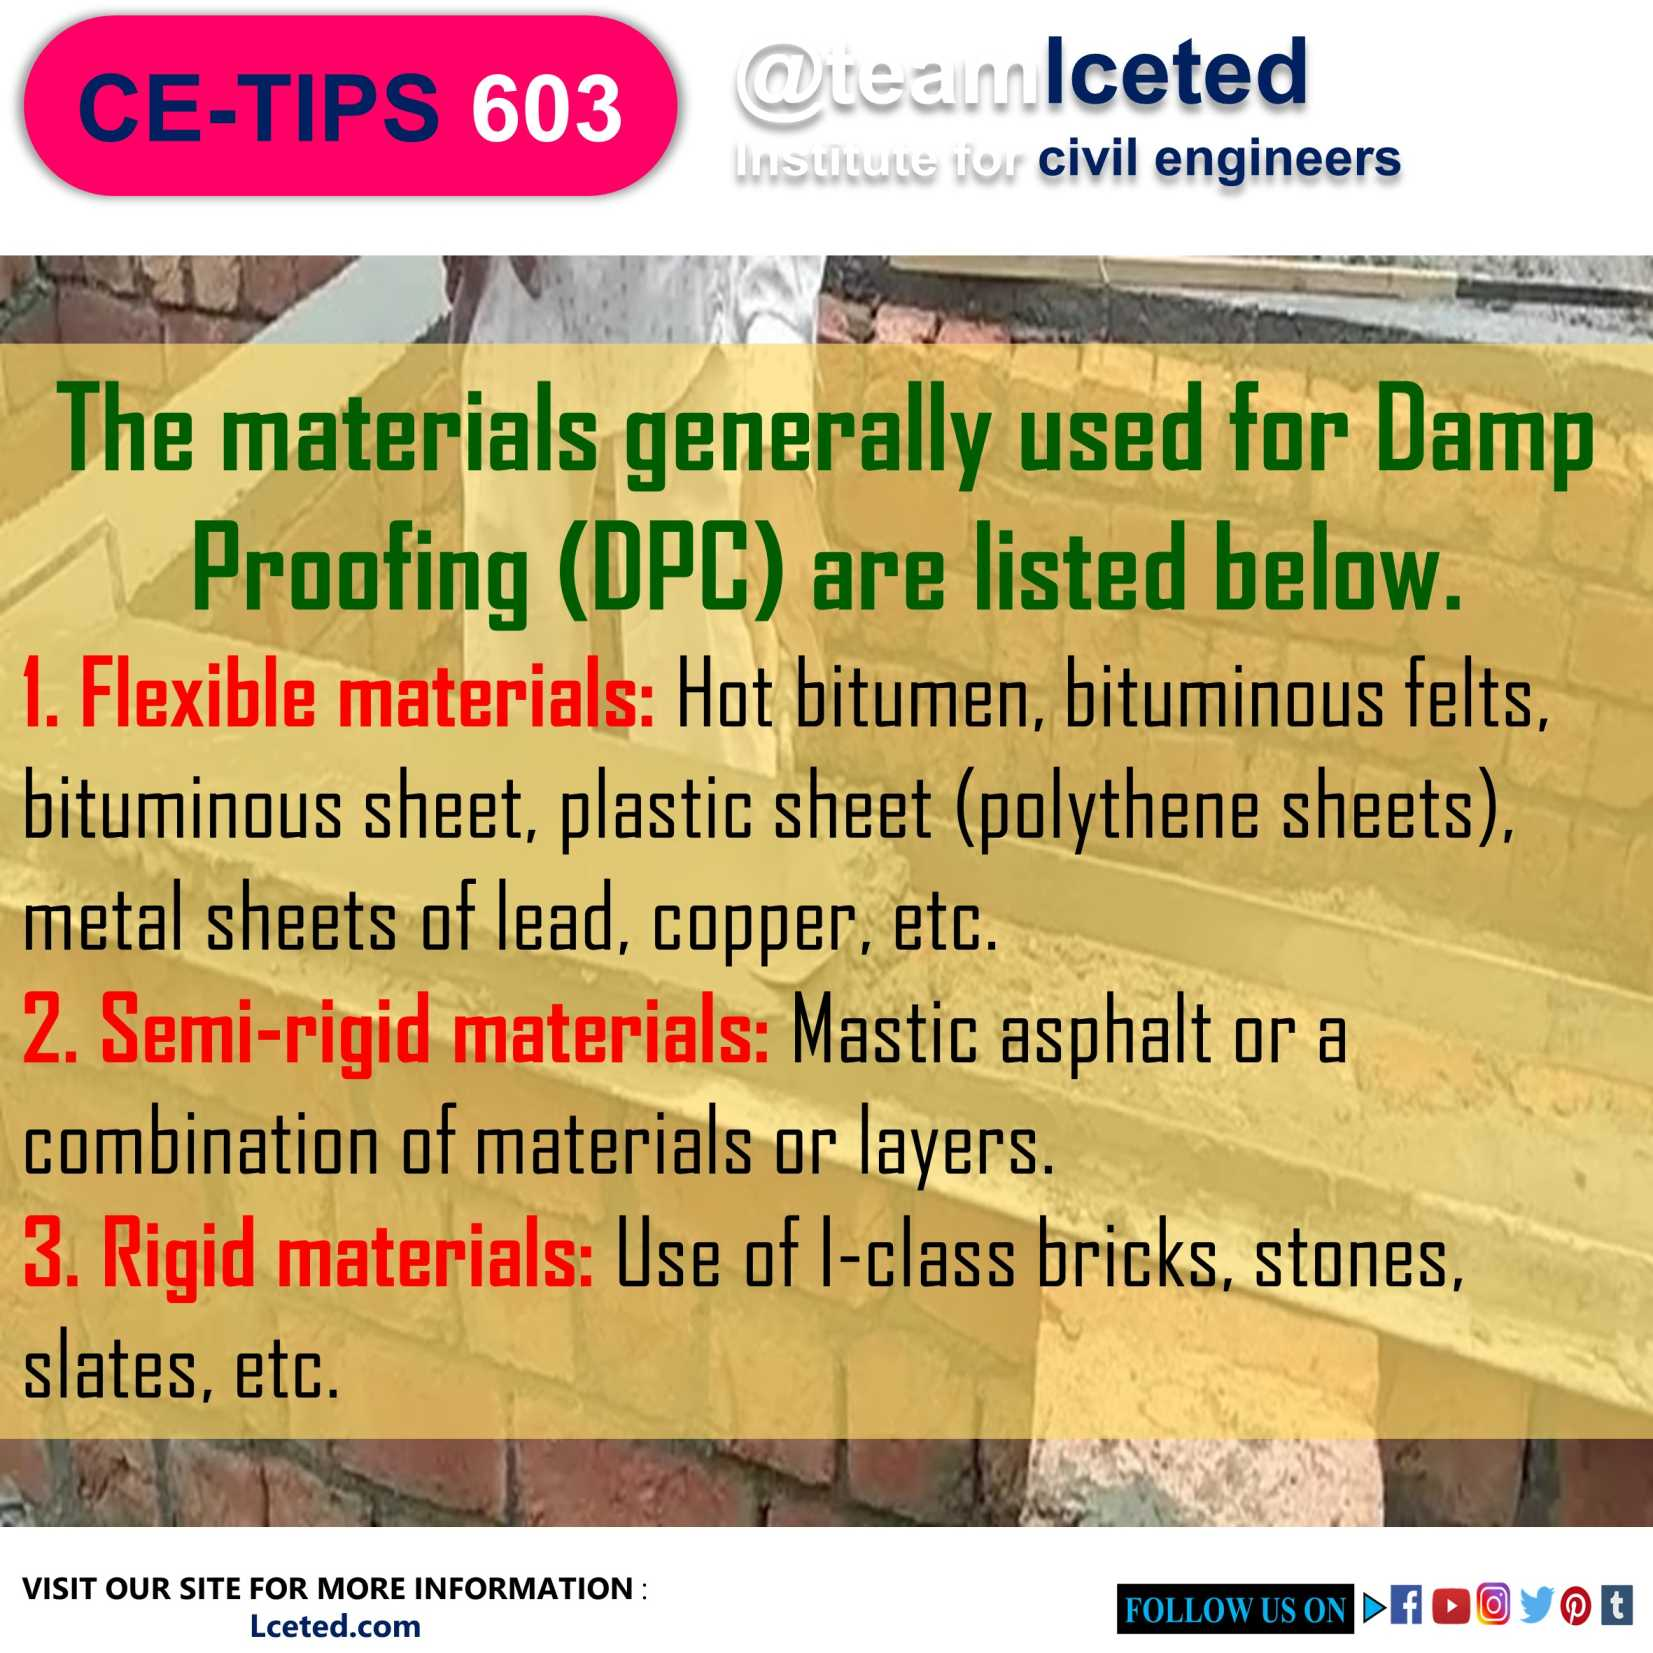 Materials Used For Damp Proofing (DPC)